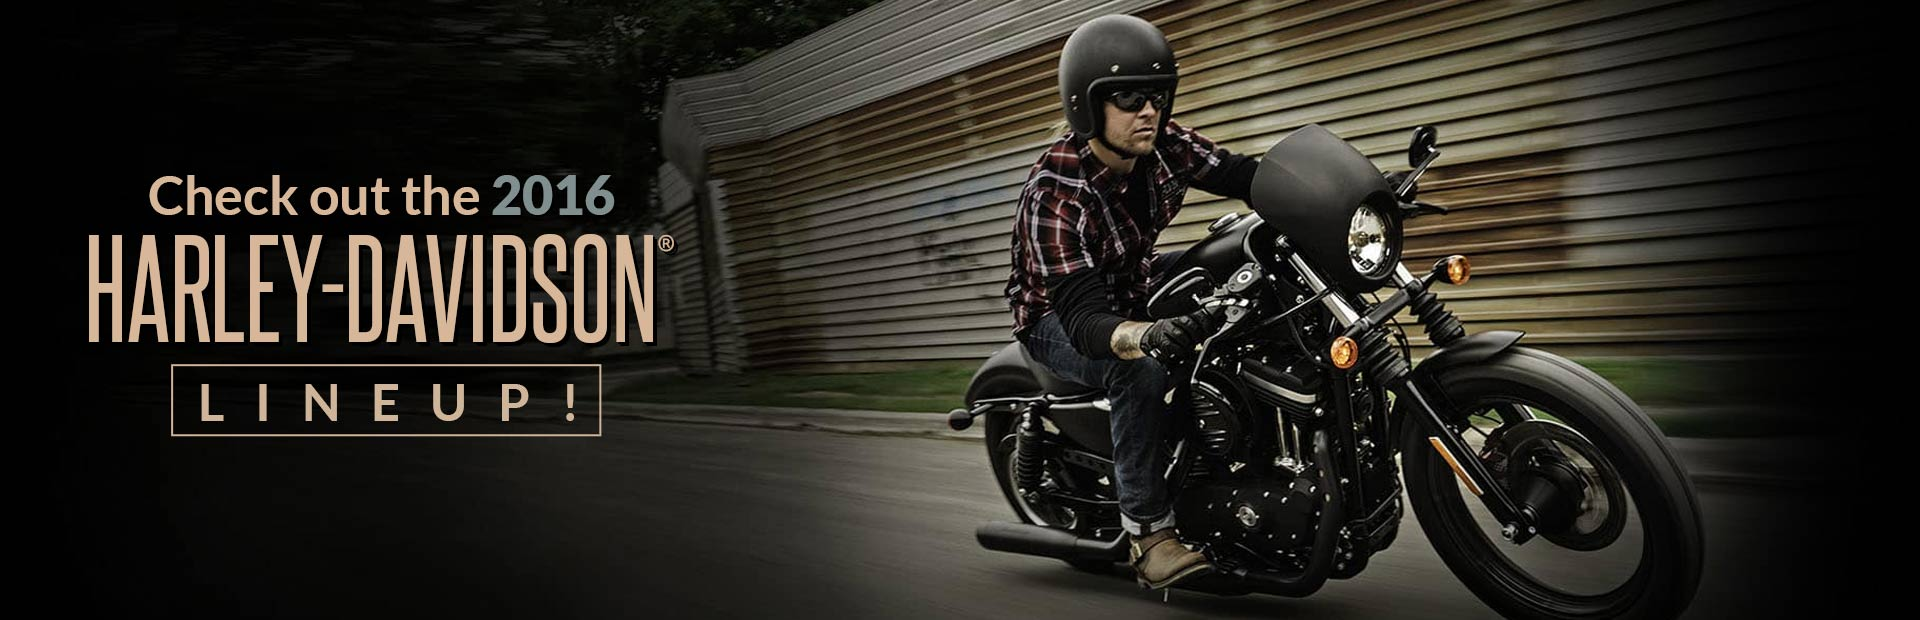 Check out the 2016 Harley-Davidson® lineup!